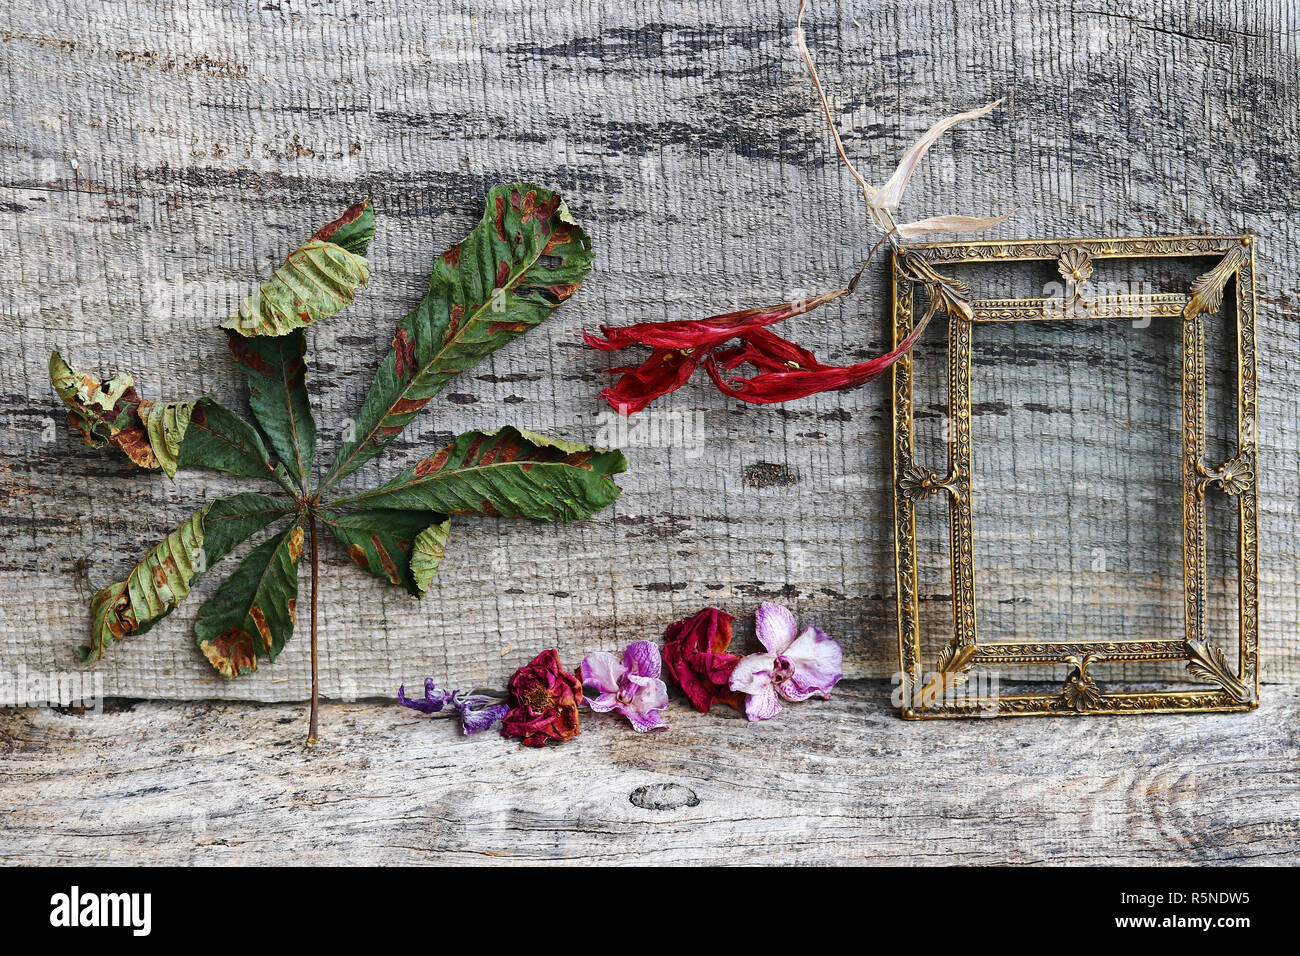 still life with flowers,leaves and a brass picture frame on wooden background Stock Photo